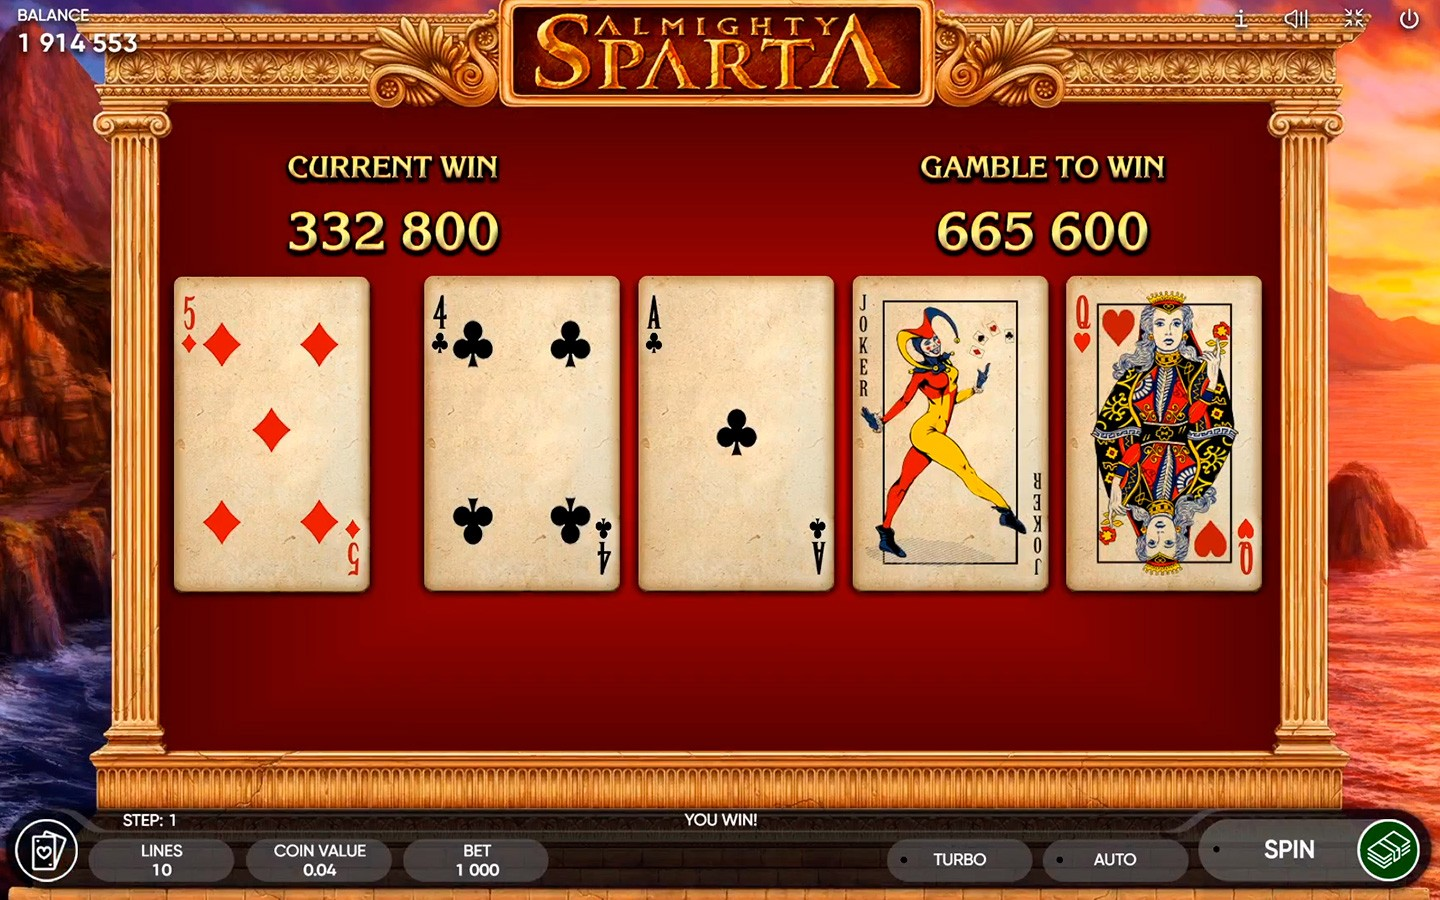 TOP SPARTA SLOTS OF 2020 | Try ALMIGHTY SPARTA SLOT now